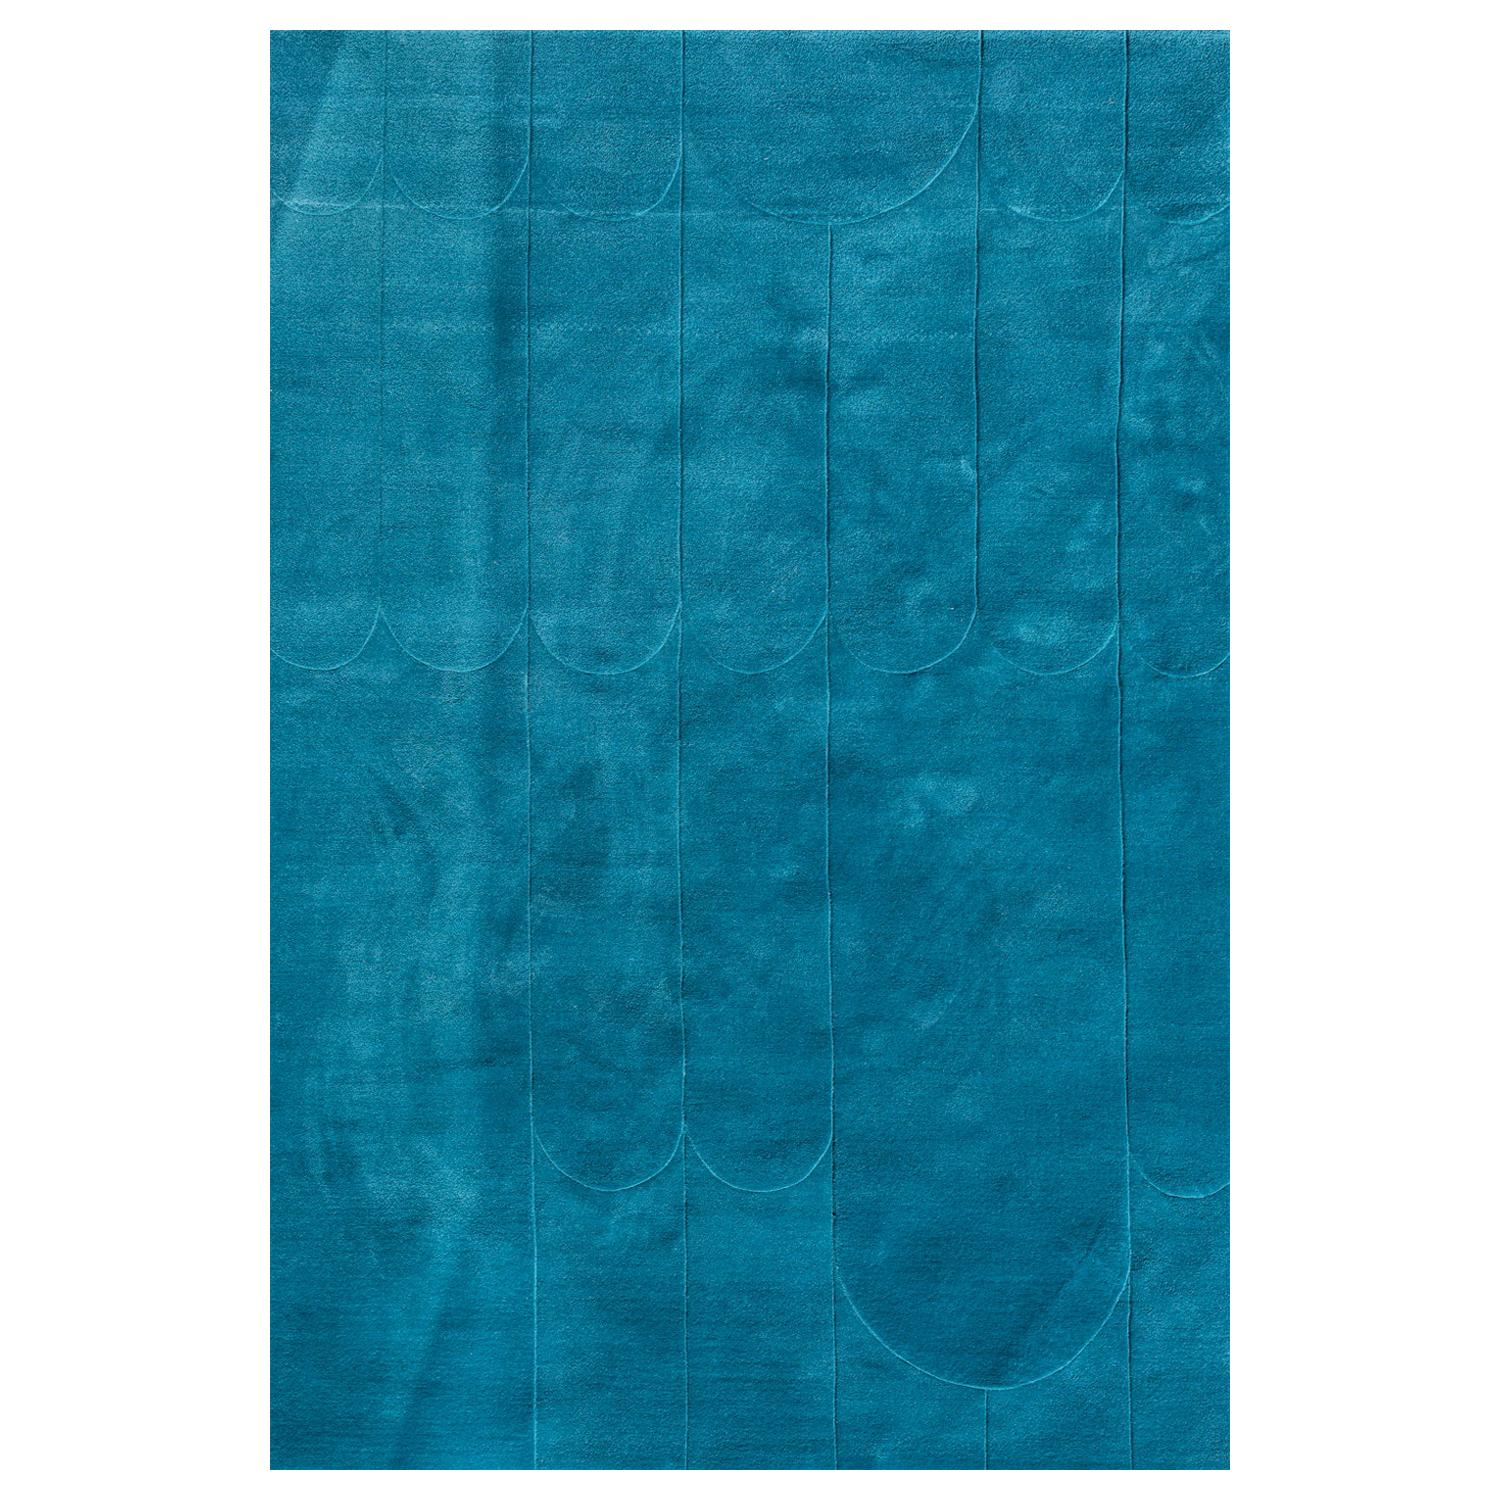 Kilombo Home 21st Century Handtufted Wool Rug Made in Spain Blue Waves